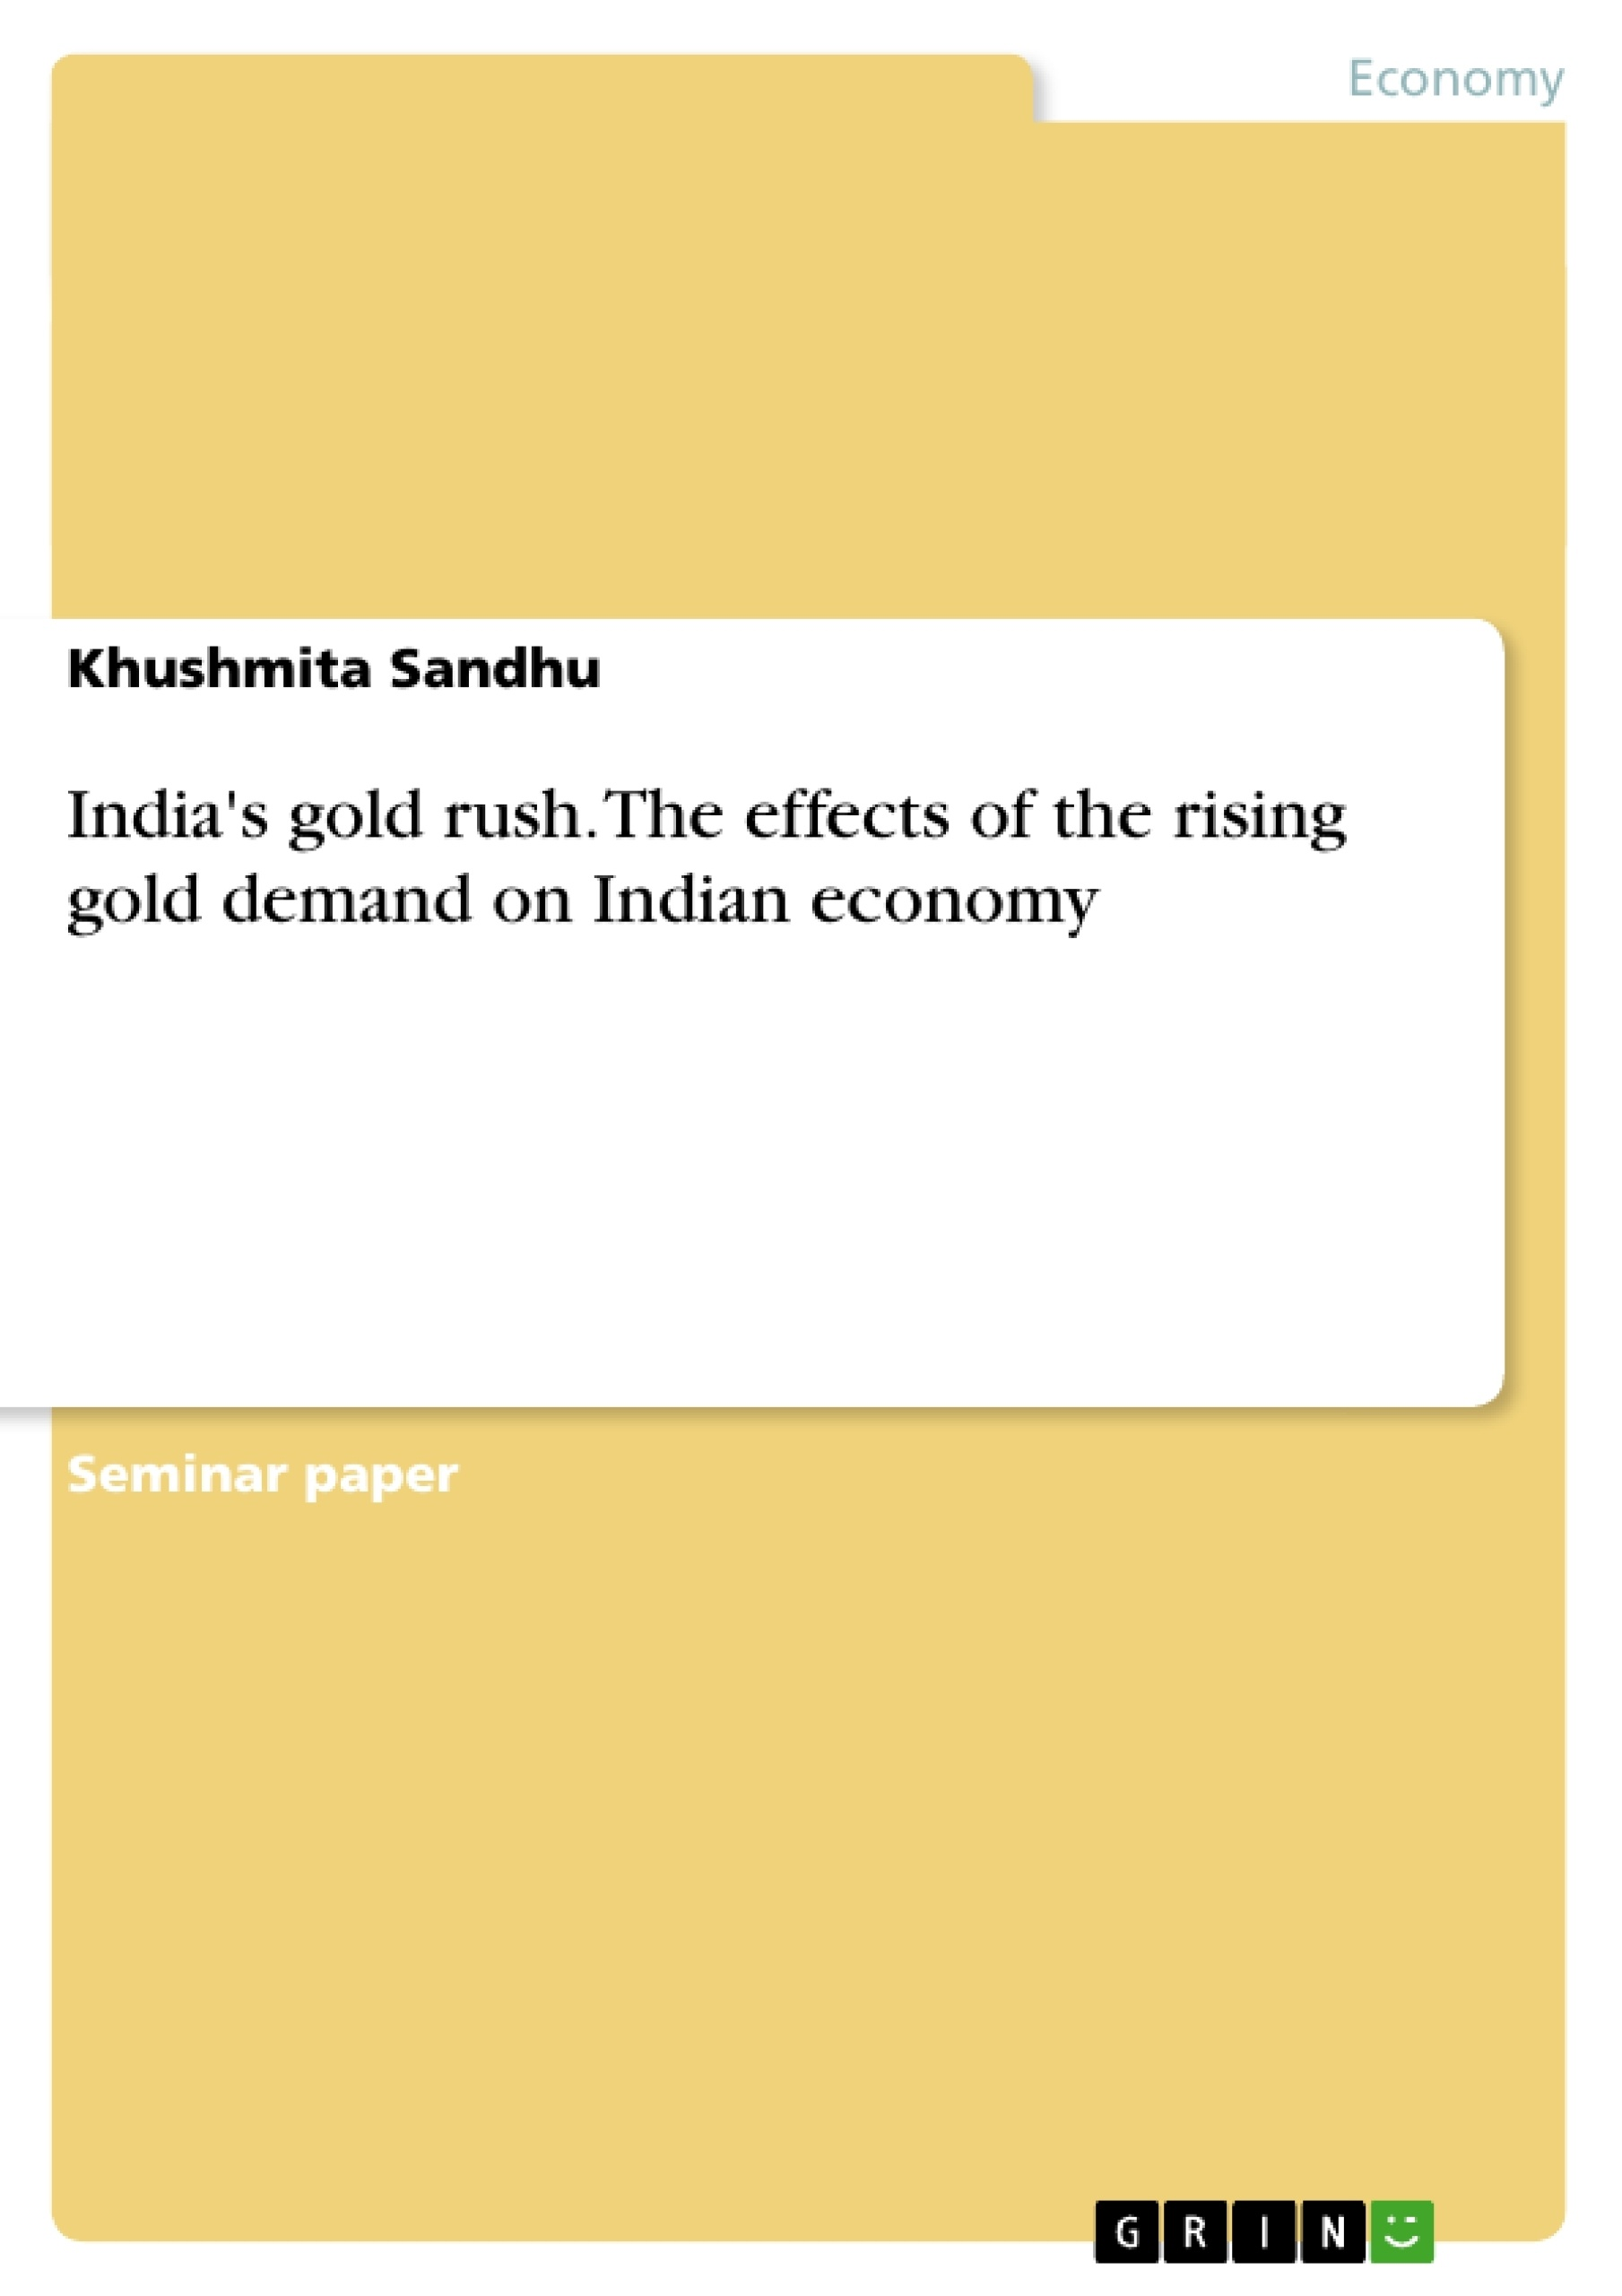 Title: India's gold rush. The effects of the rising gold demand on Indian economy